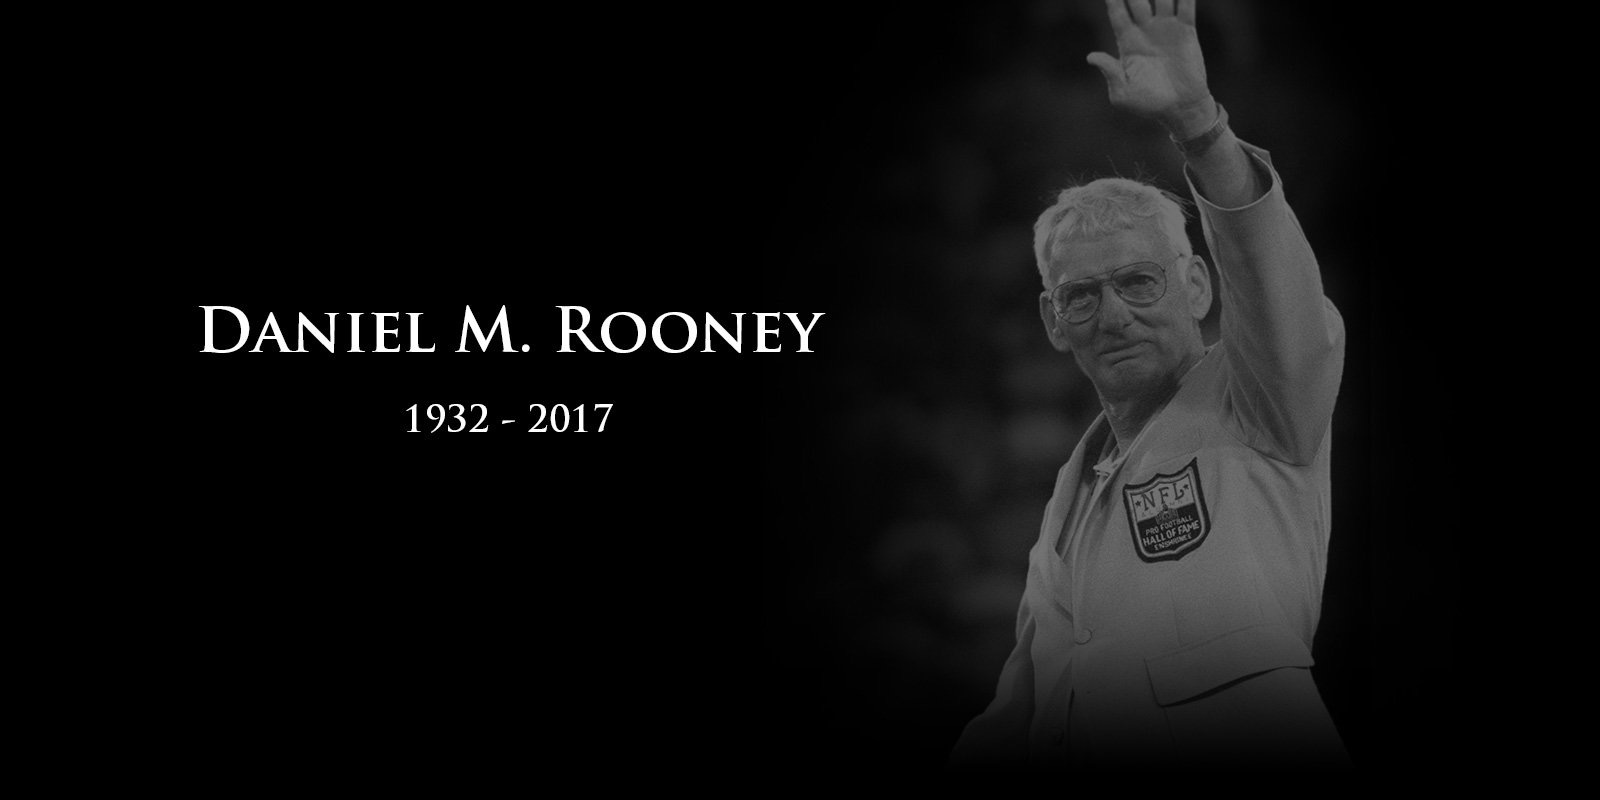 Steelers Longtime Owner Dan Rooney Passes Away